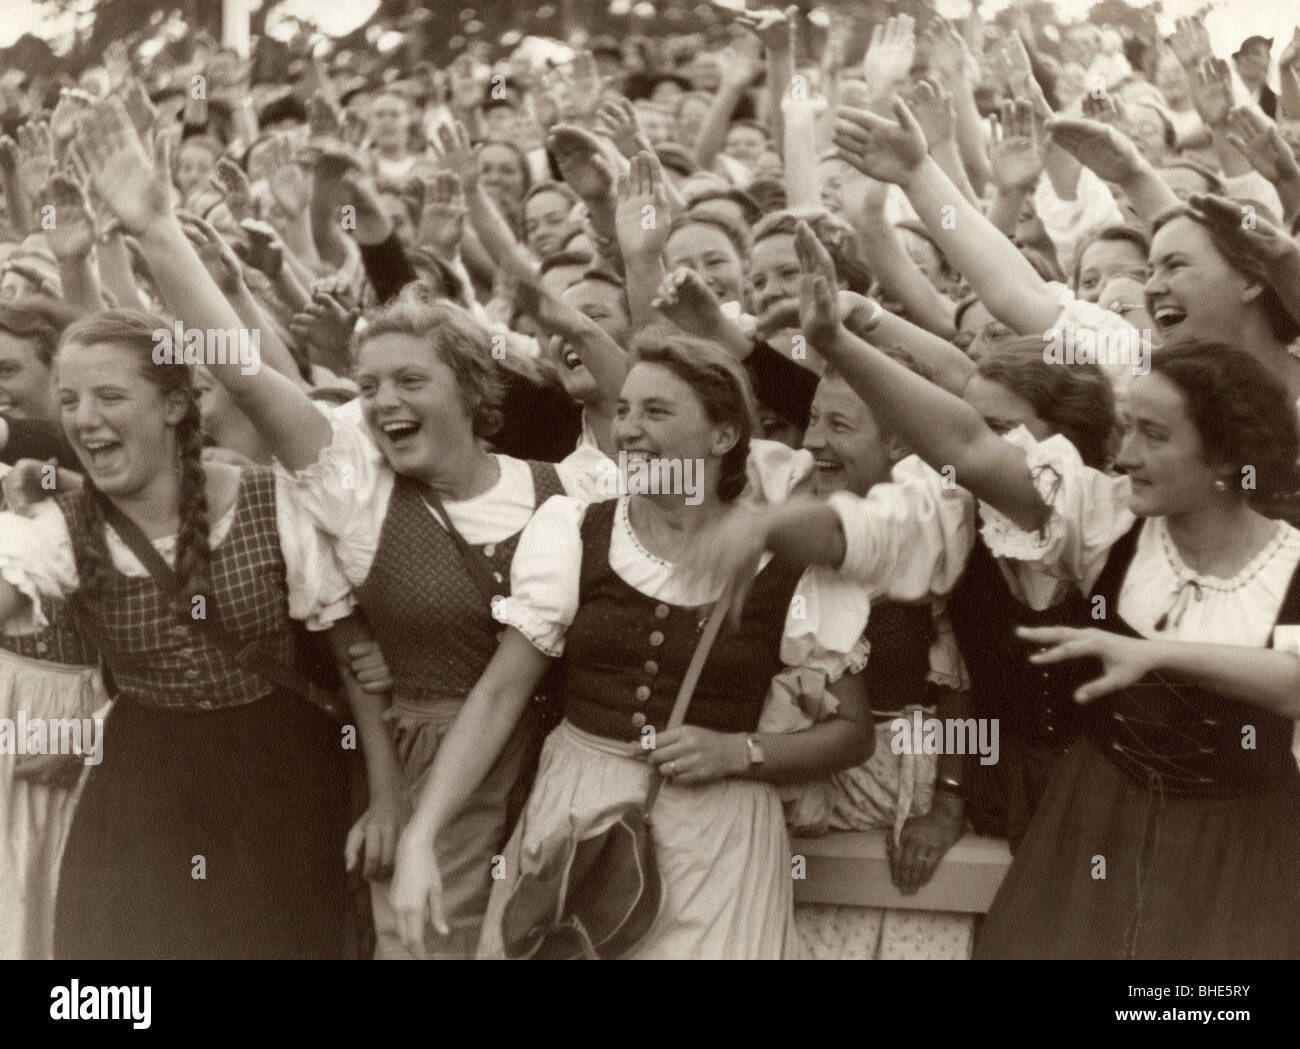 Nazism / National Socialism, Nazism, parades / rallies, cheering women, 1930s, Additional-Rights-Clearances-NA - Stock Image